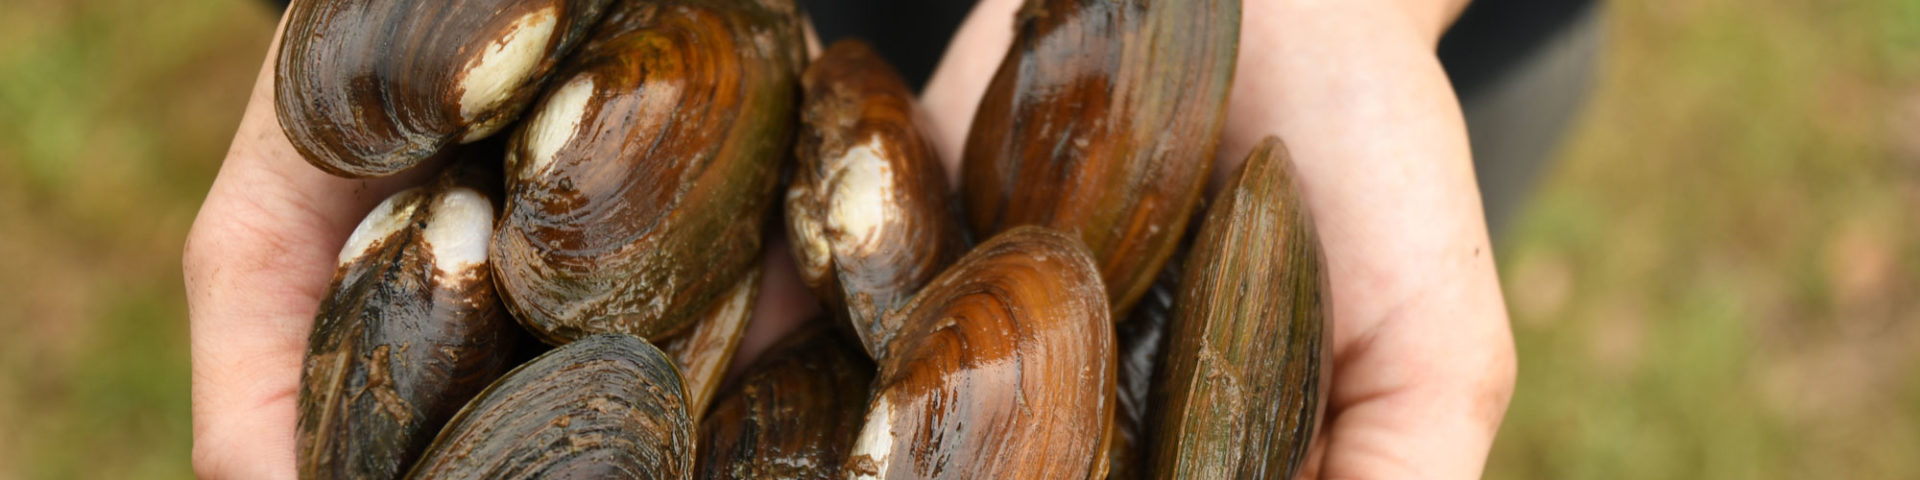 Freshwater mussels in hands